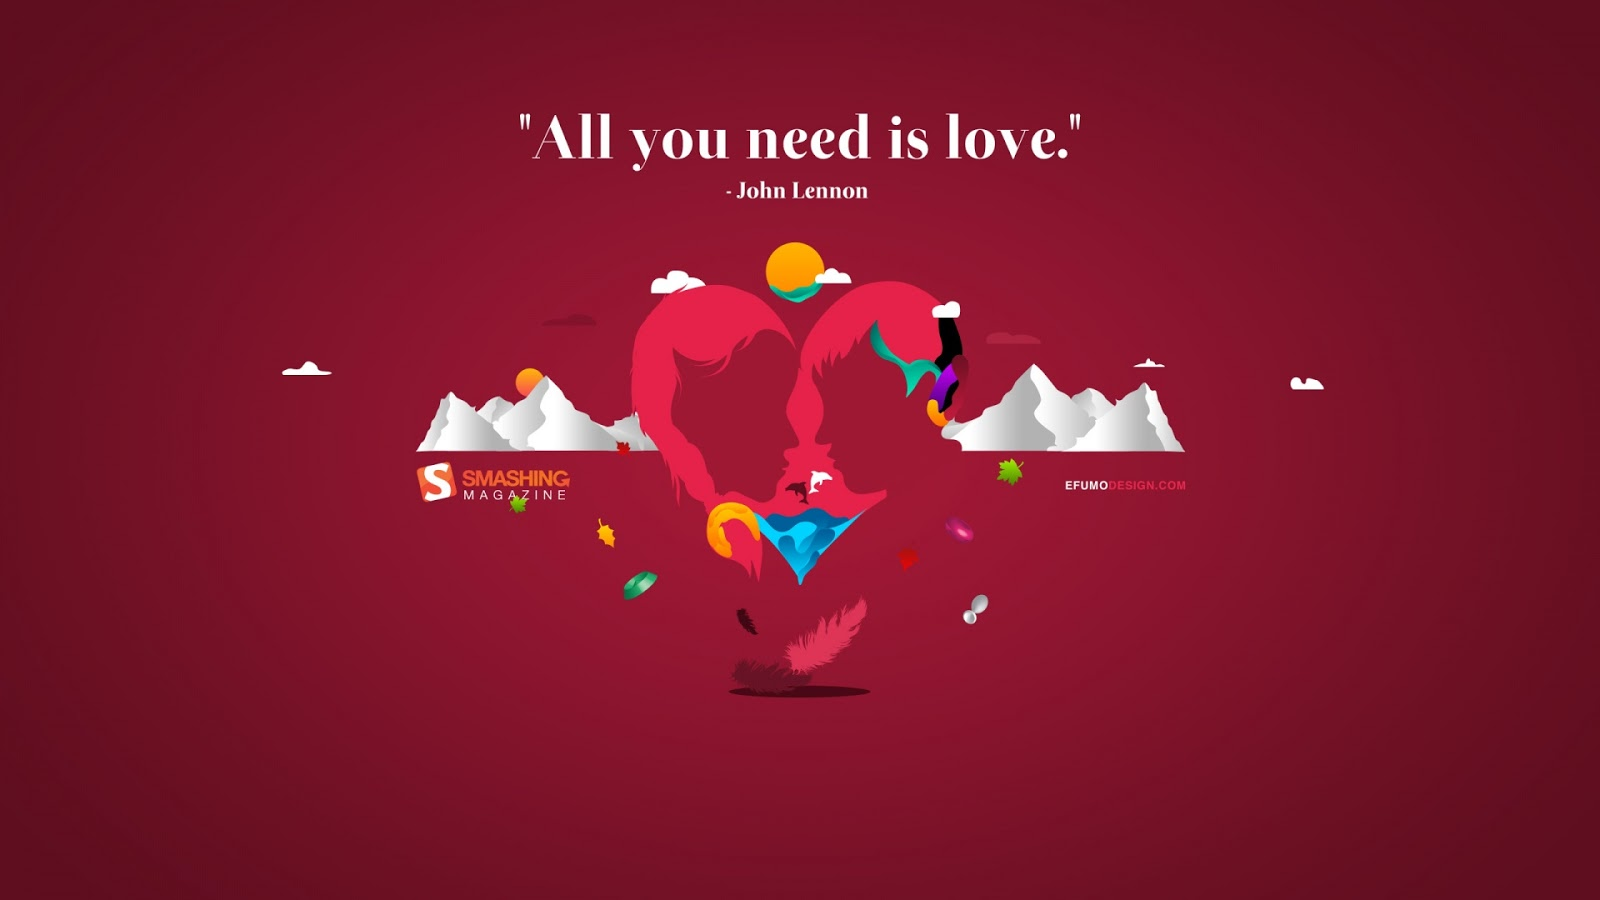 All You Need is Love 1920x1080